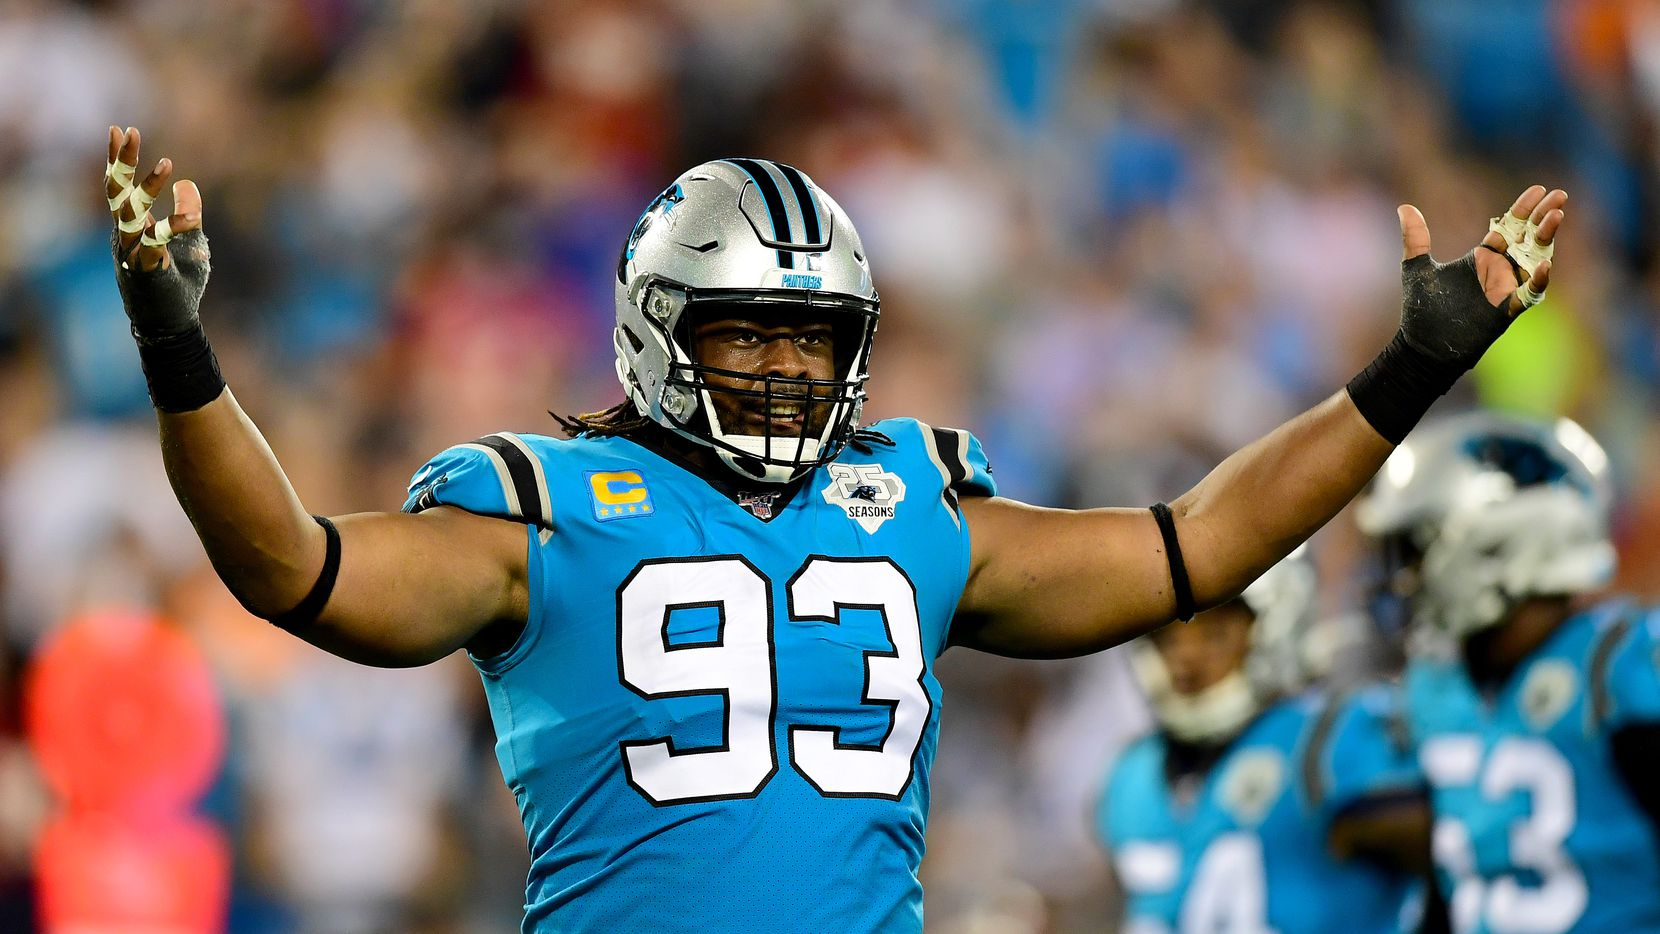 Gerald McCoy, who played with Carolina last season, is in the final stages of negotiations with the Cowboys on a three-year deal.